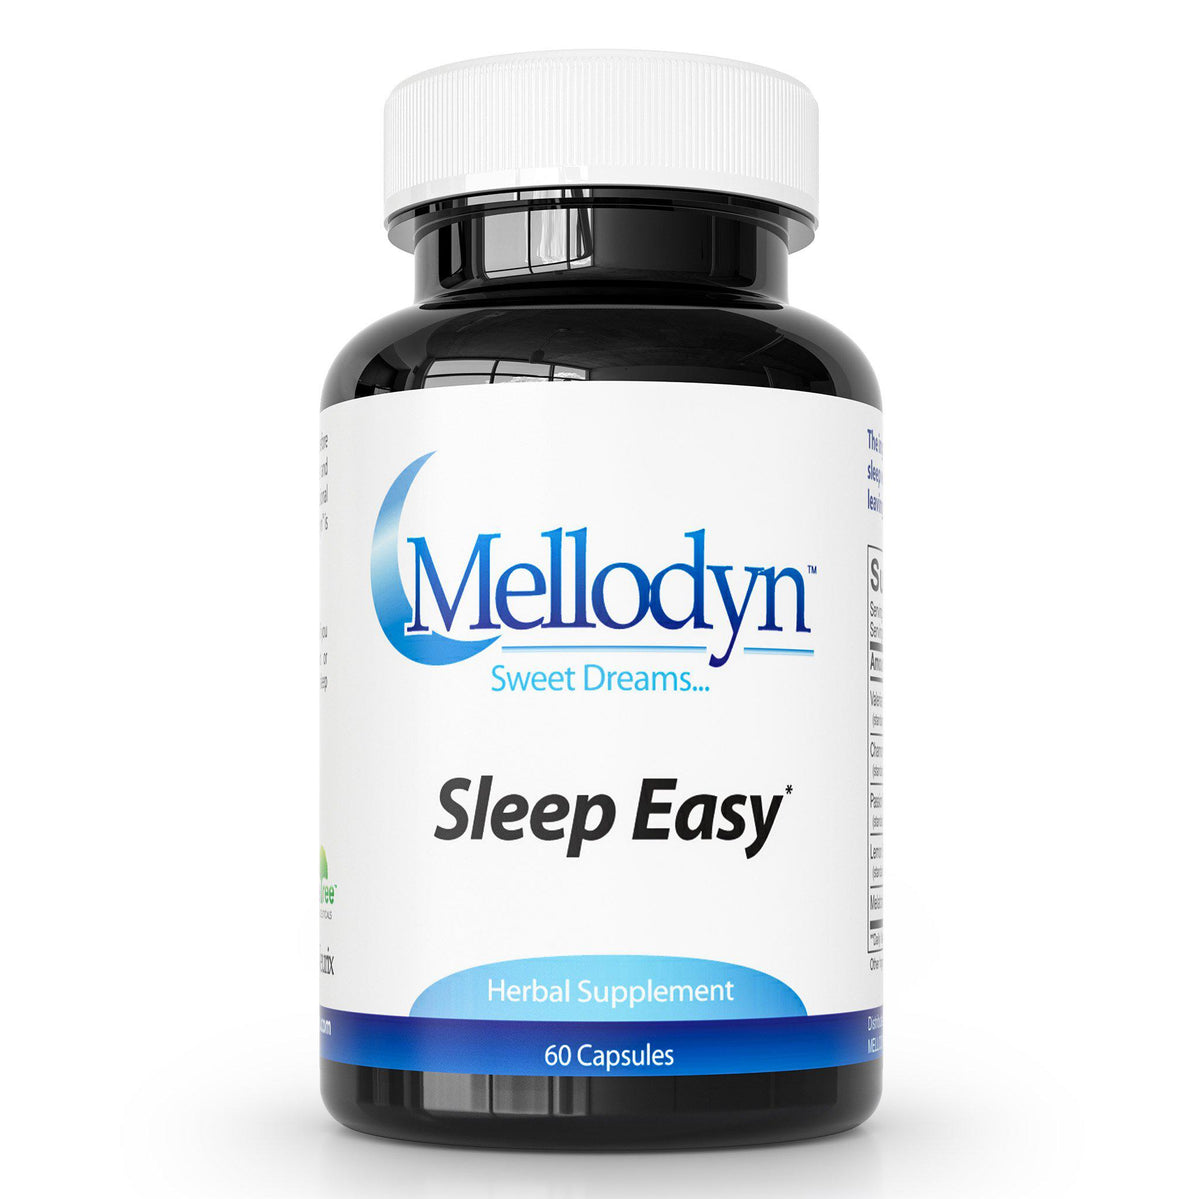 Mellodyn sleep supplement